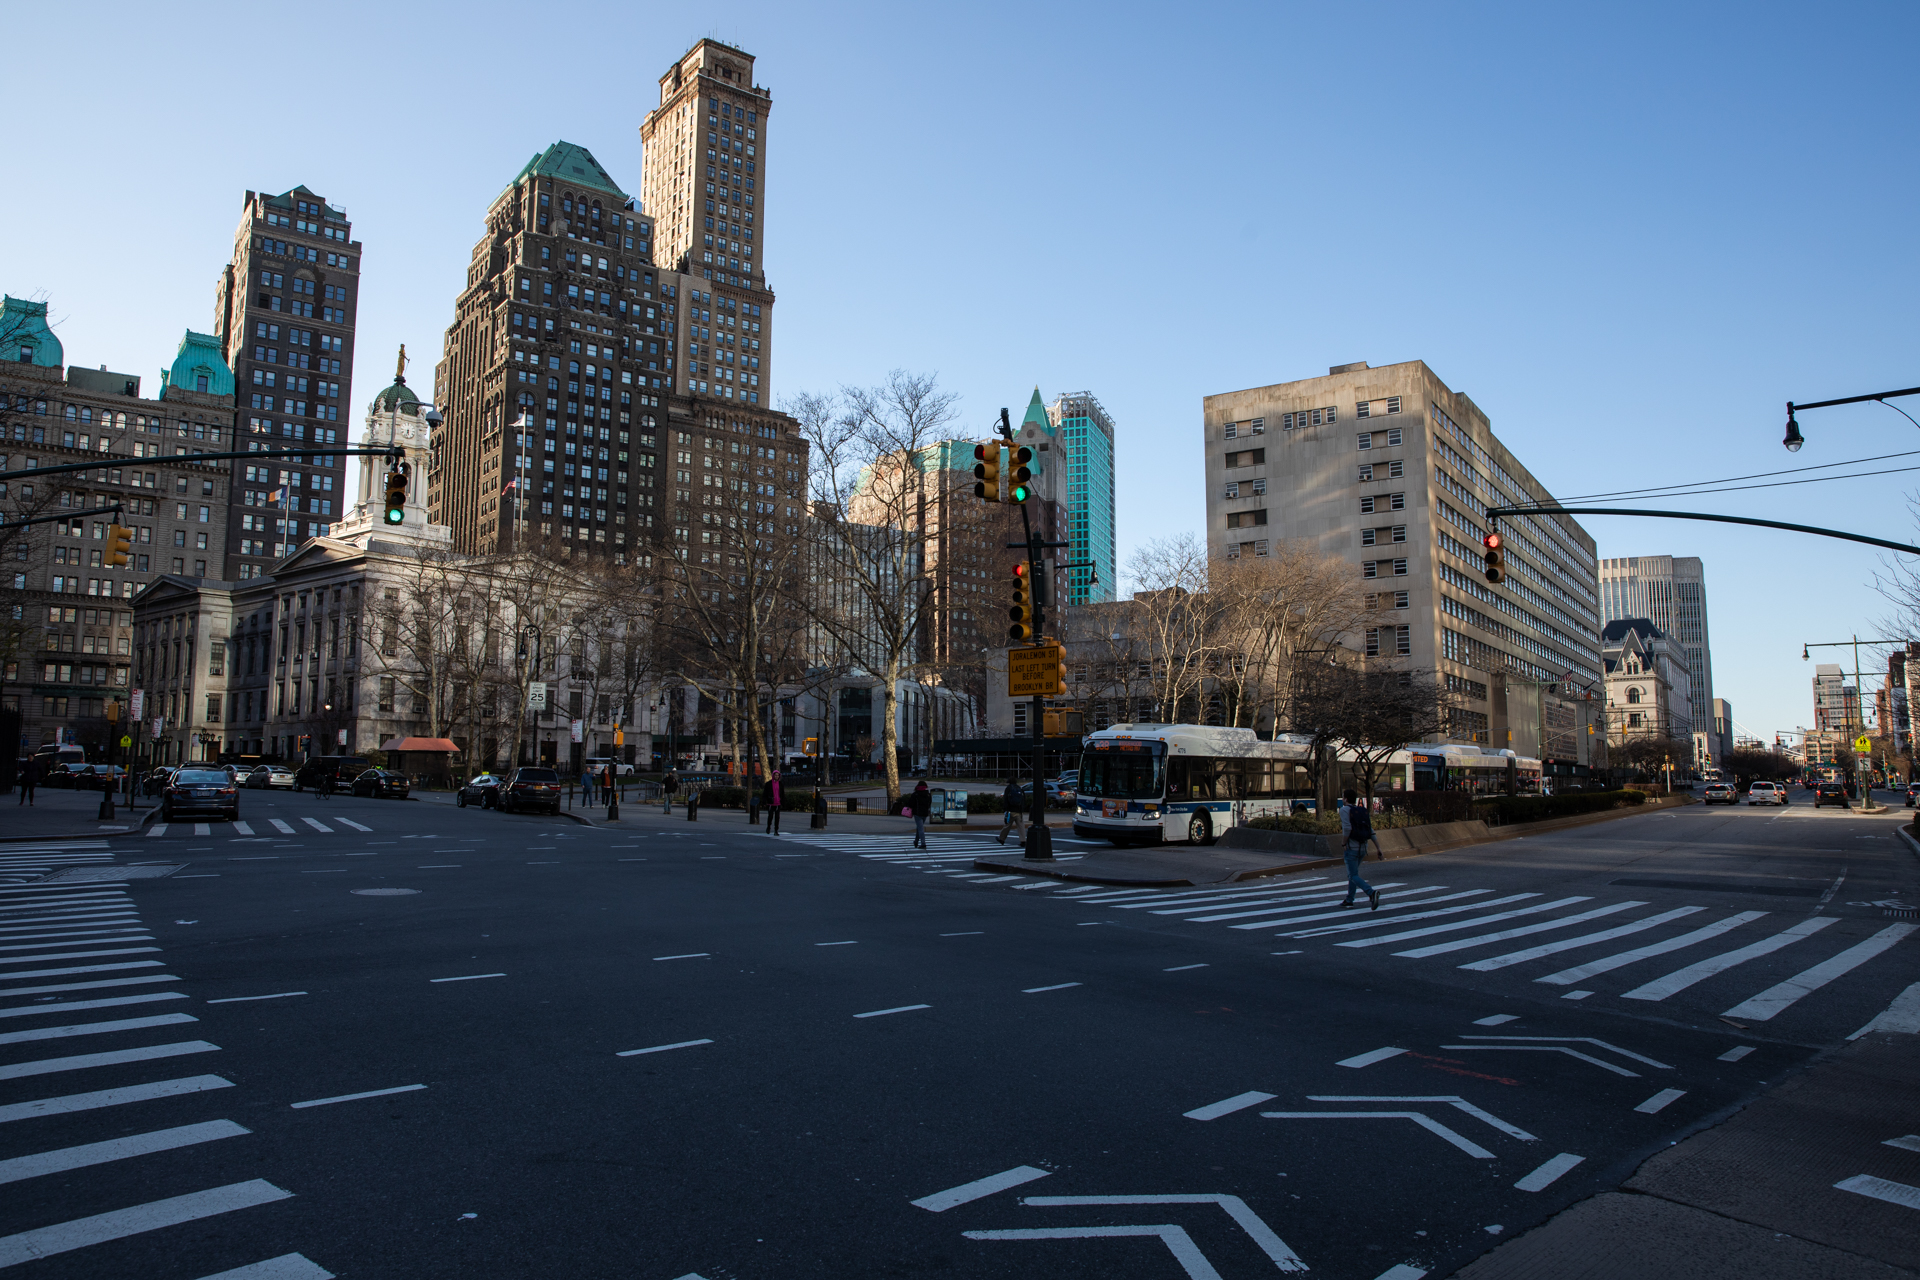 The pedestrian crosswalk from Fulton Street to Brooklyn Borough Hall and the Municipal Building at 5:40 p.m. The street usually hosts crowds of people.